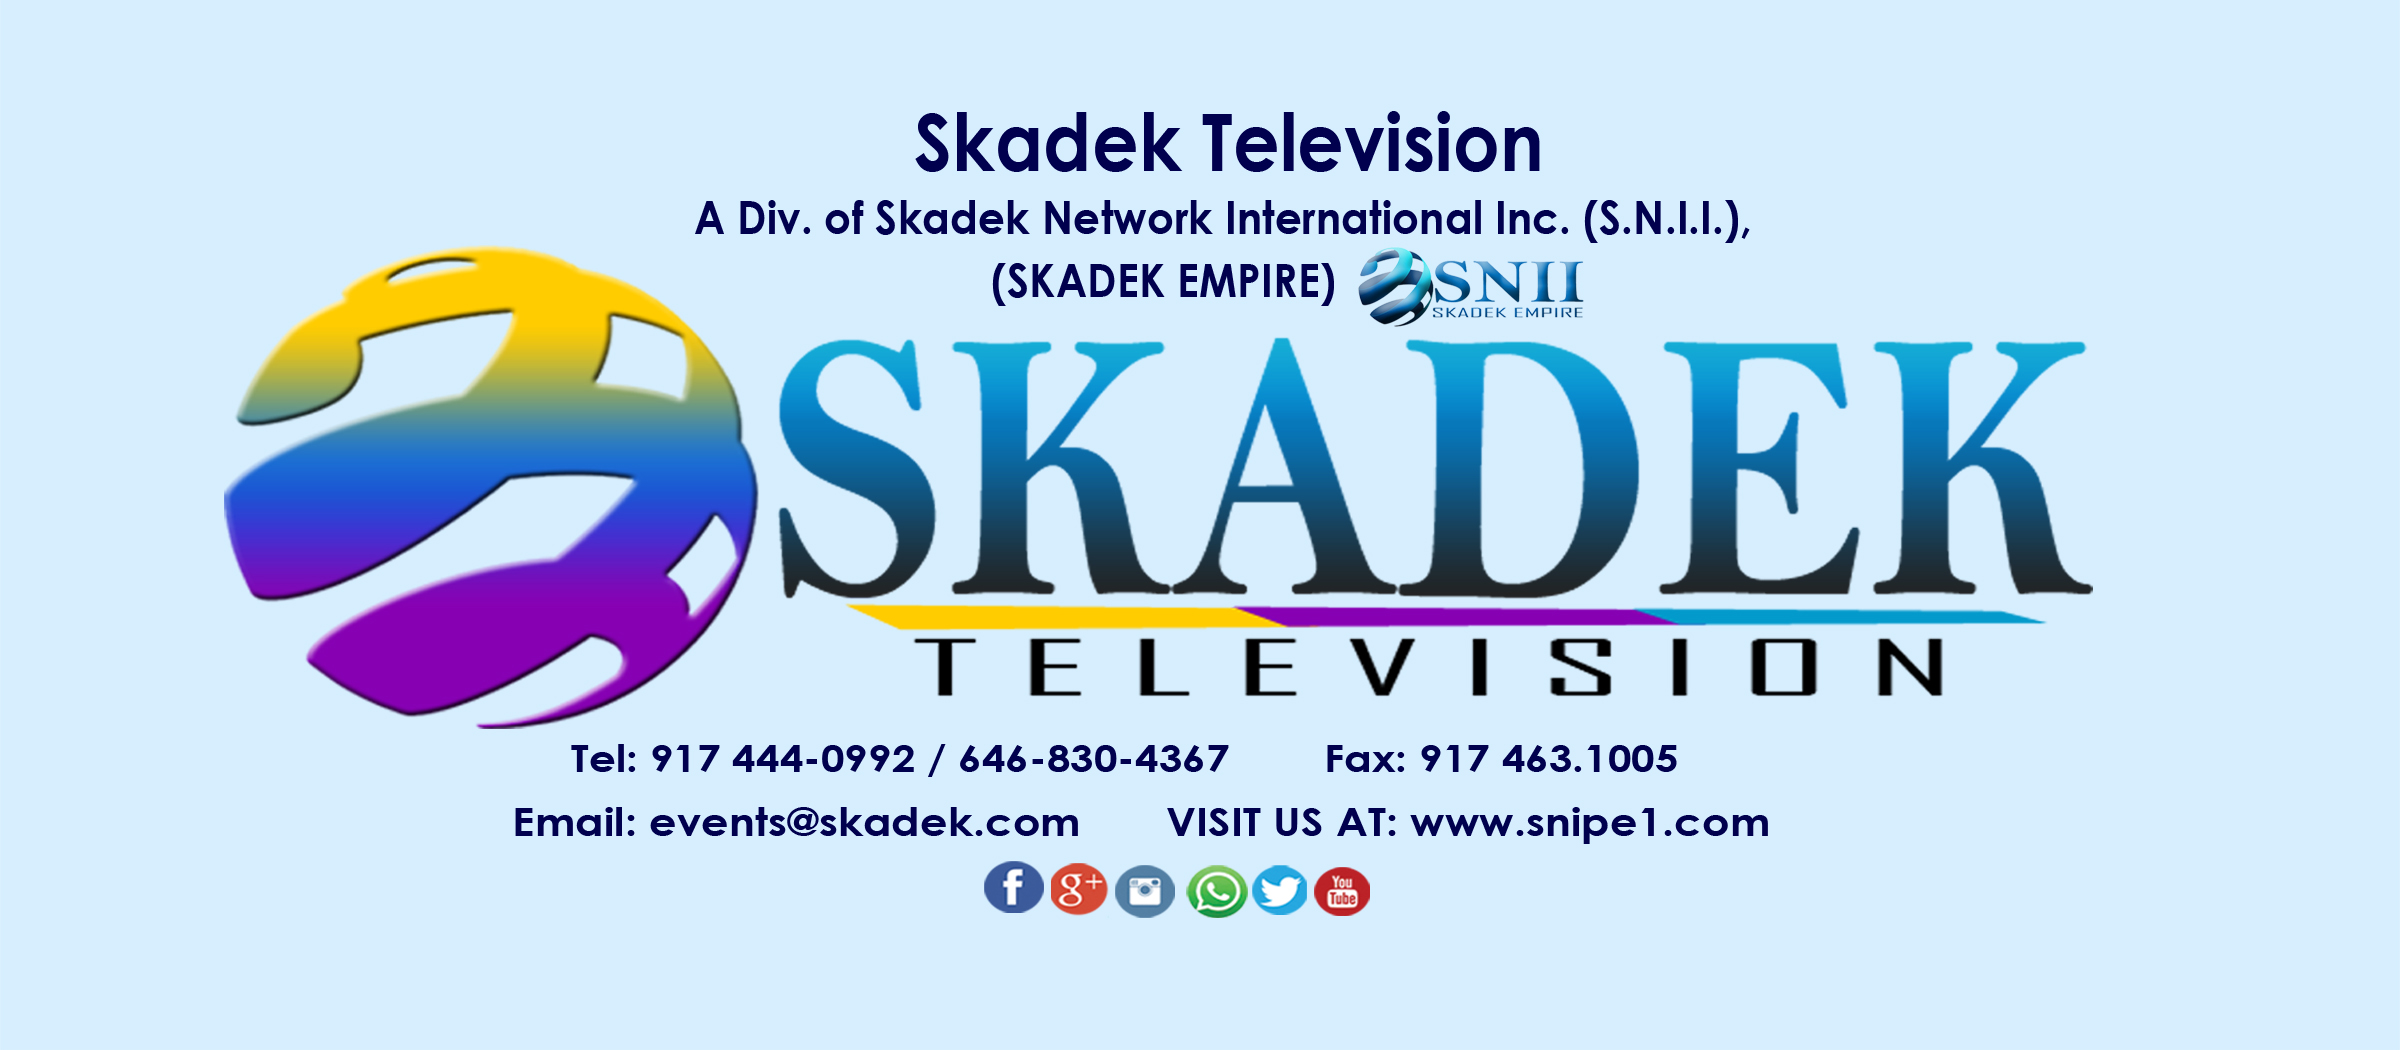 SKADEK TV FB COVER